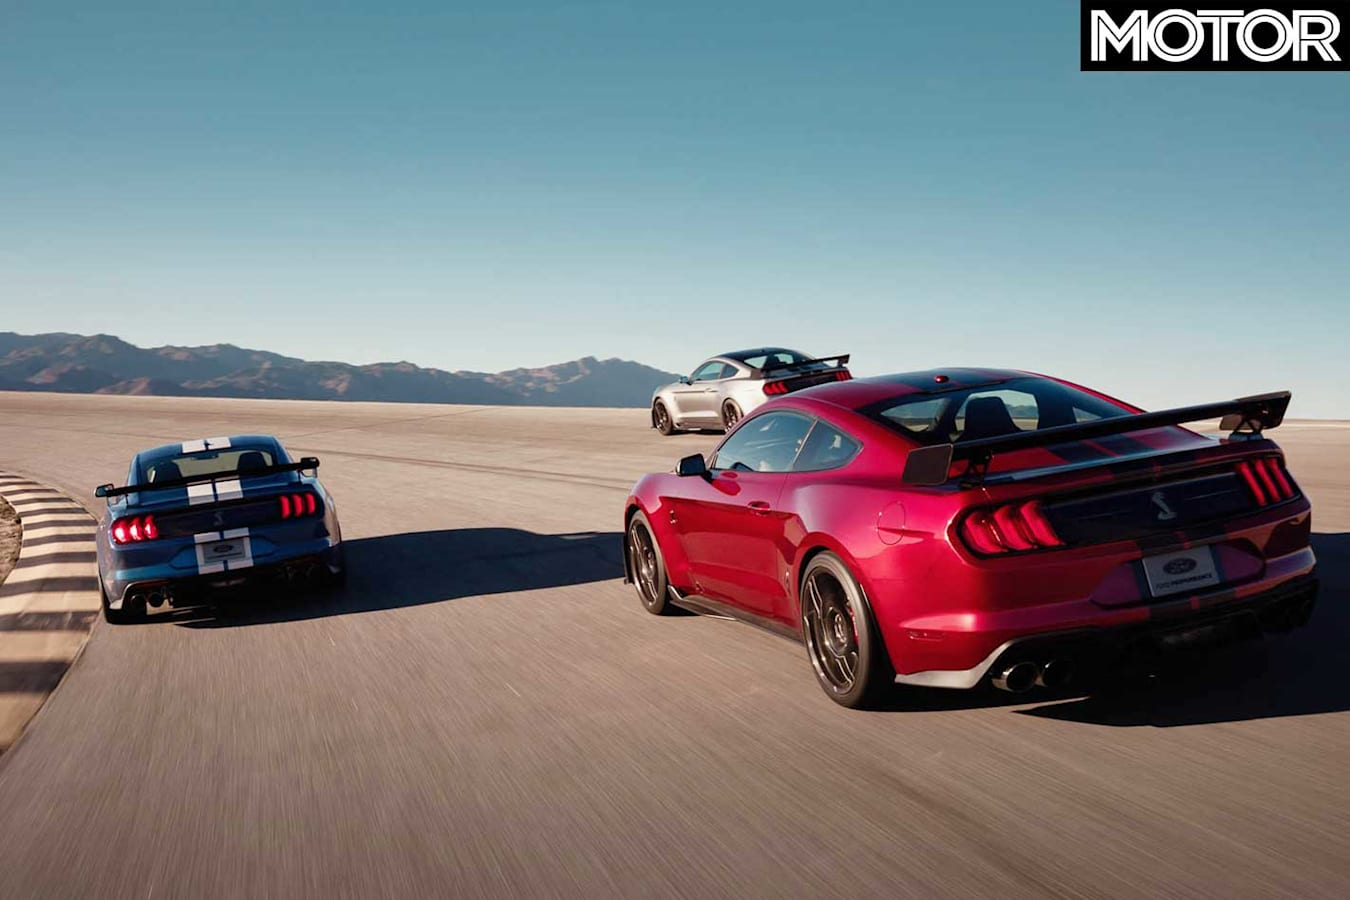 2020 Ford Mustang Shelby GT 500 Performance Jpg